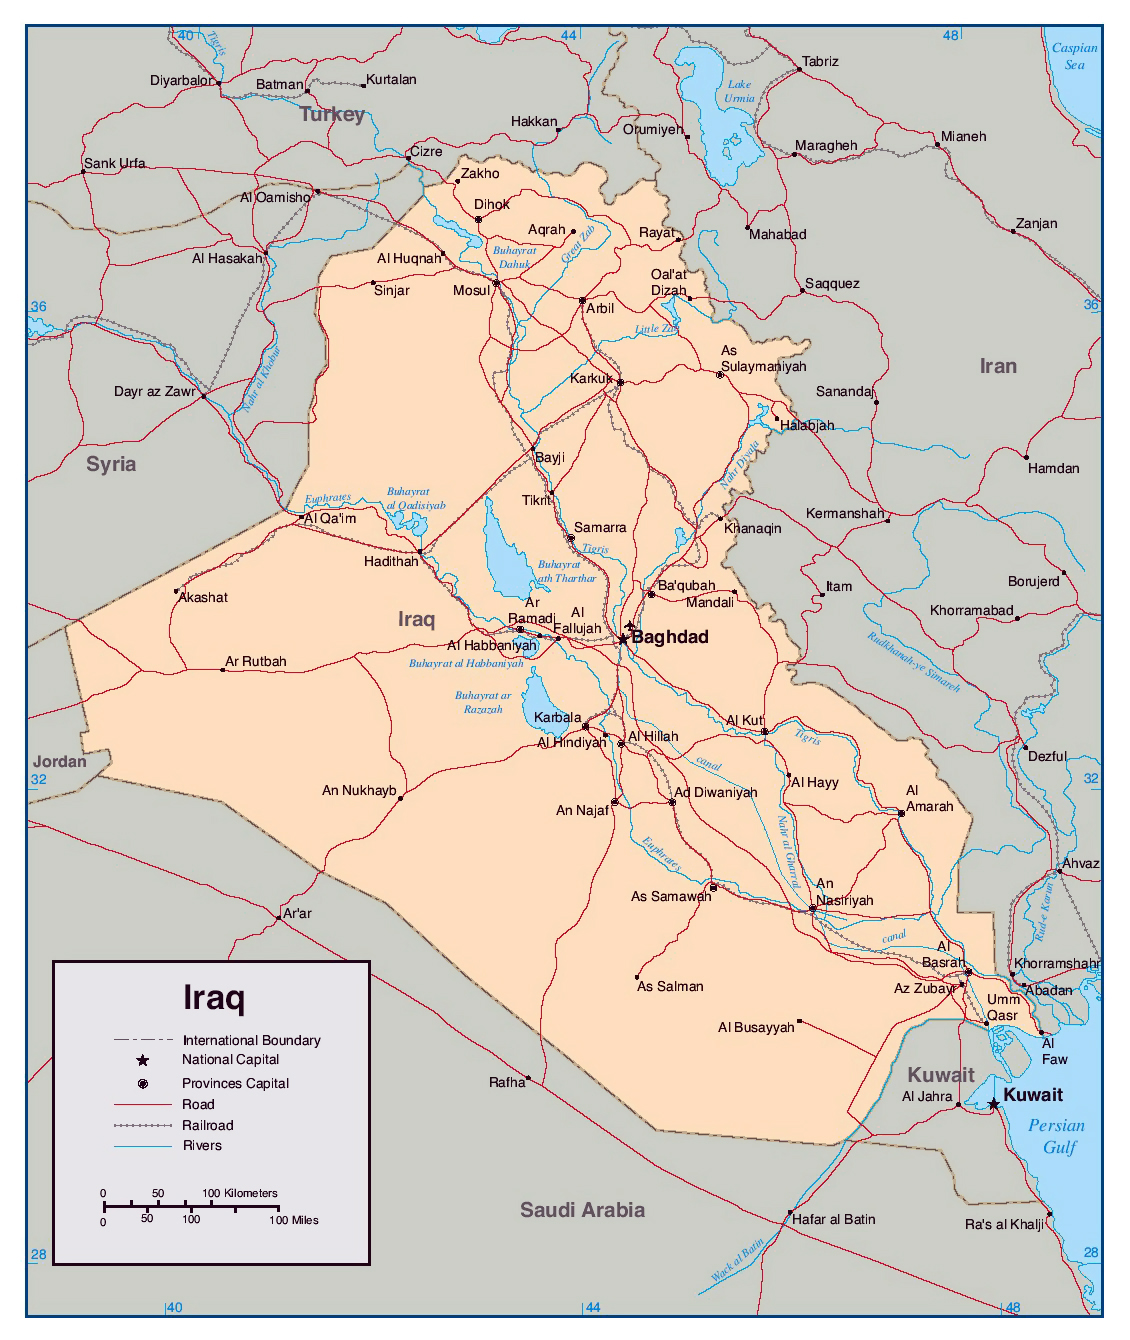 Detailed political map of Iraq with rivers roads railroads and